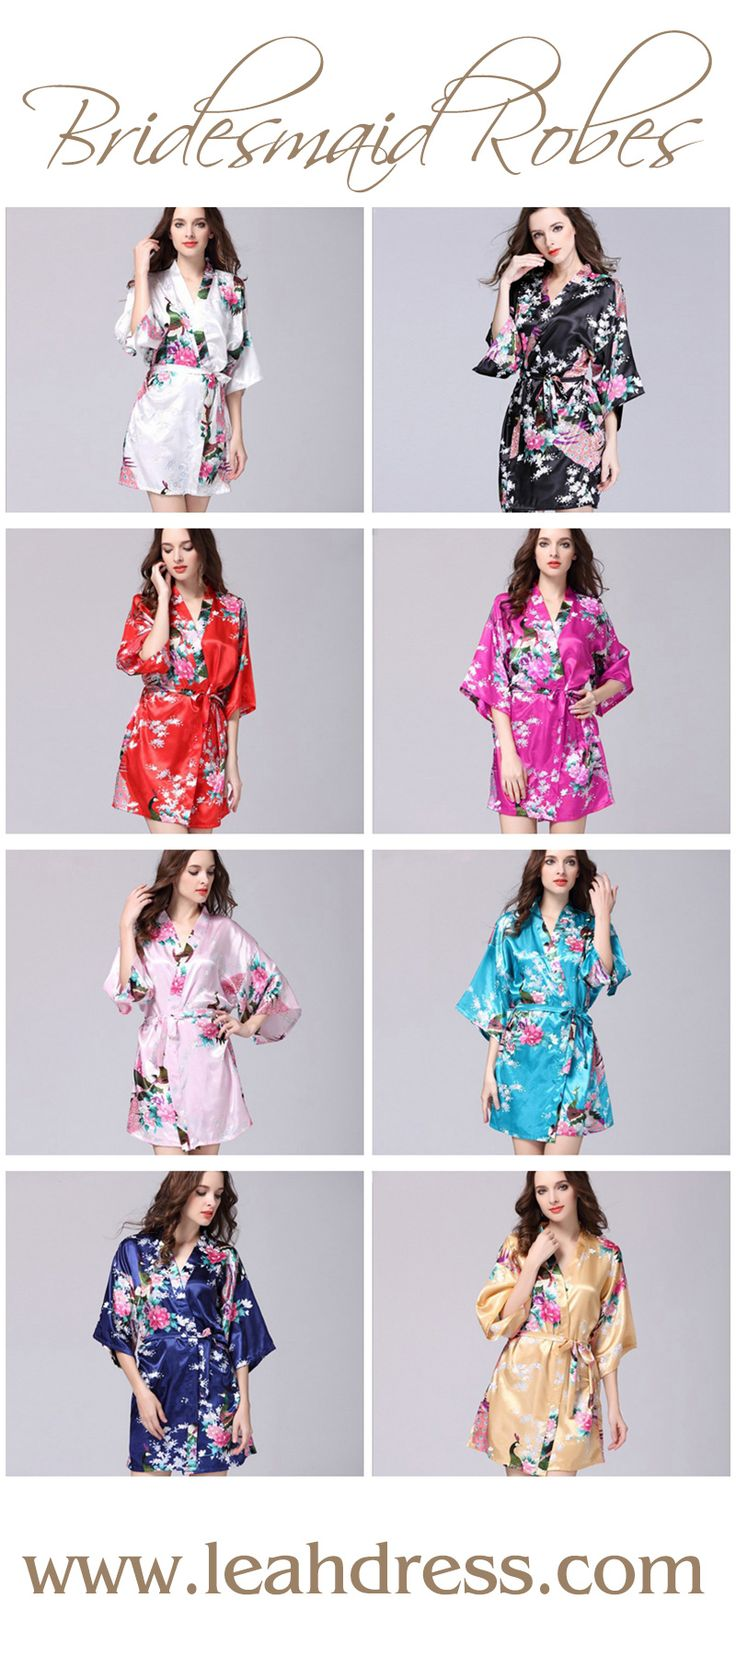 Gorgeous Cheap Bridesmaid robes   A bridesmaid gift your girls will love! Wear for getting ready on your wedding morning. shop at www.leahdress.com